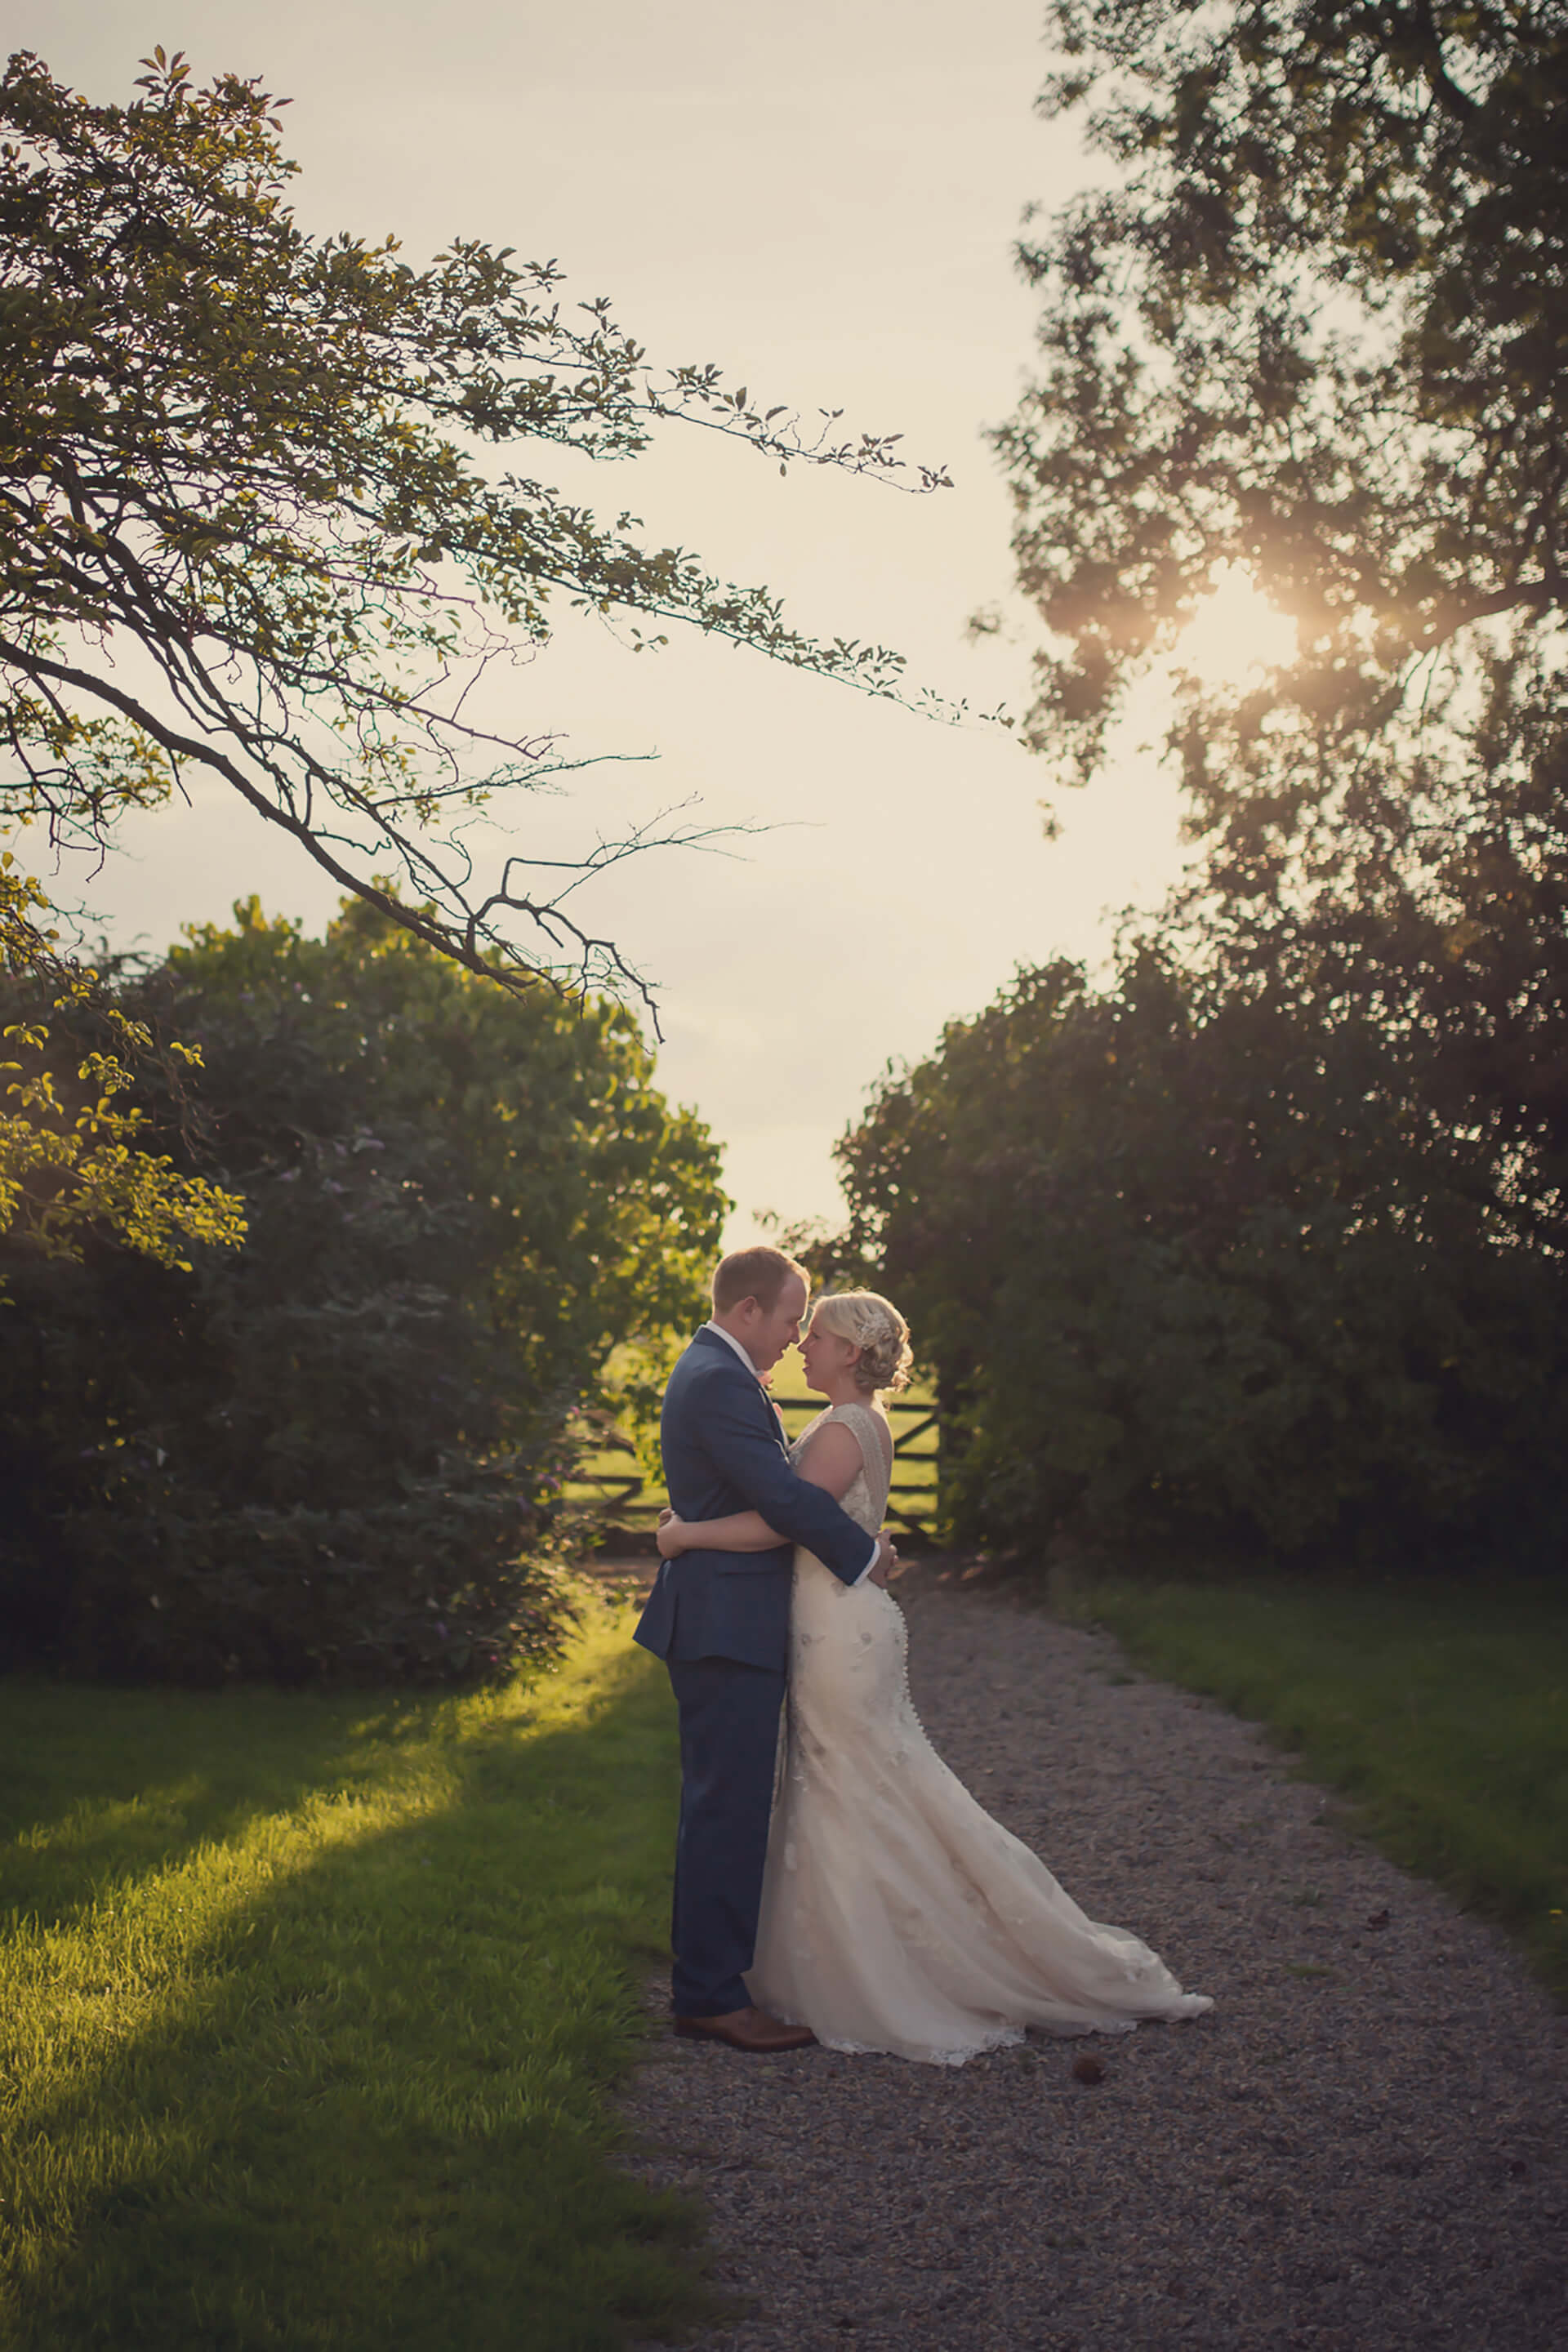 "<a href=""http://www.lissaalexandraphotography.com/"" target=""_blank"">Lissa Alexandra Photography</a> capturing a beautiful moment between bride and groom."